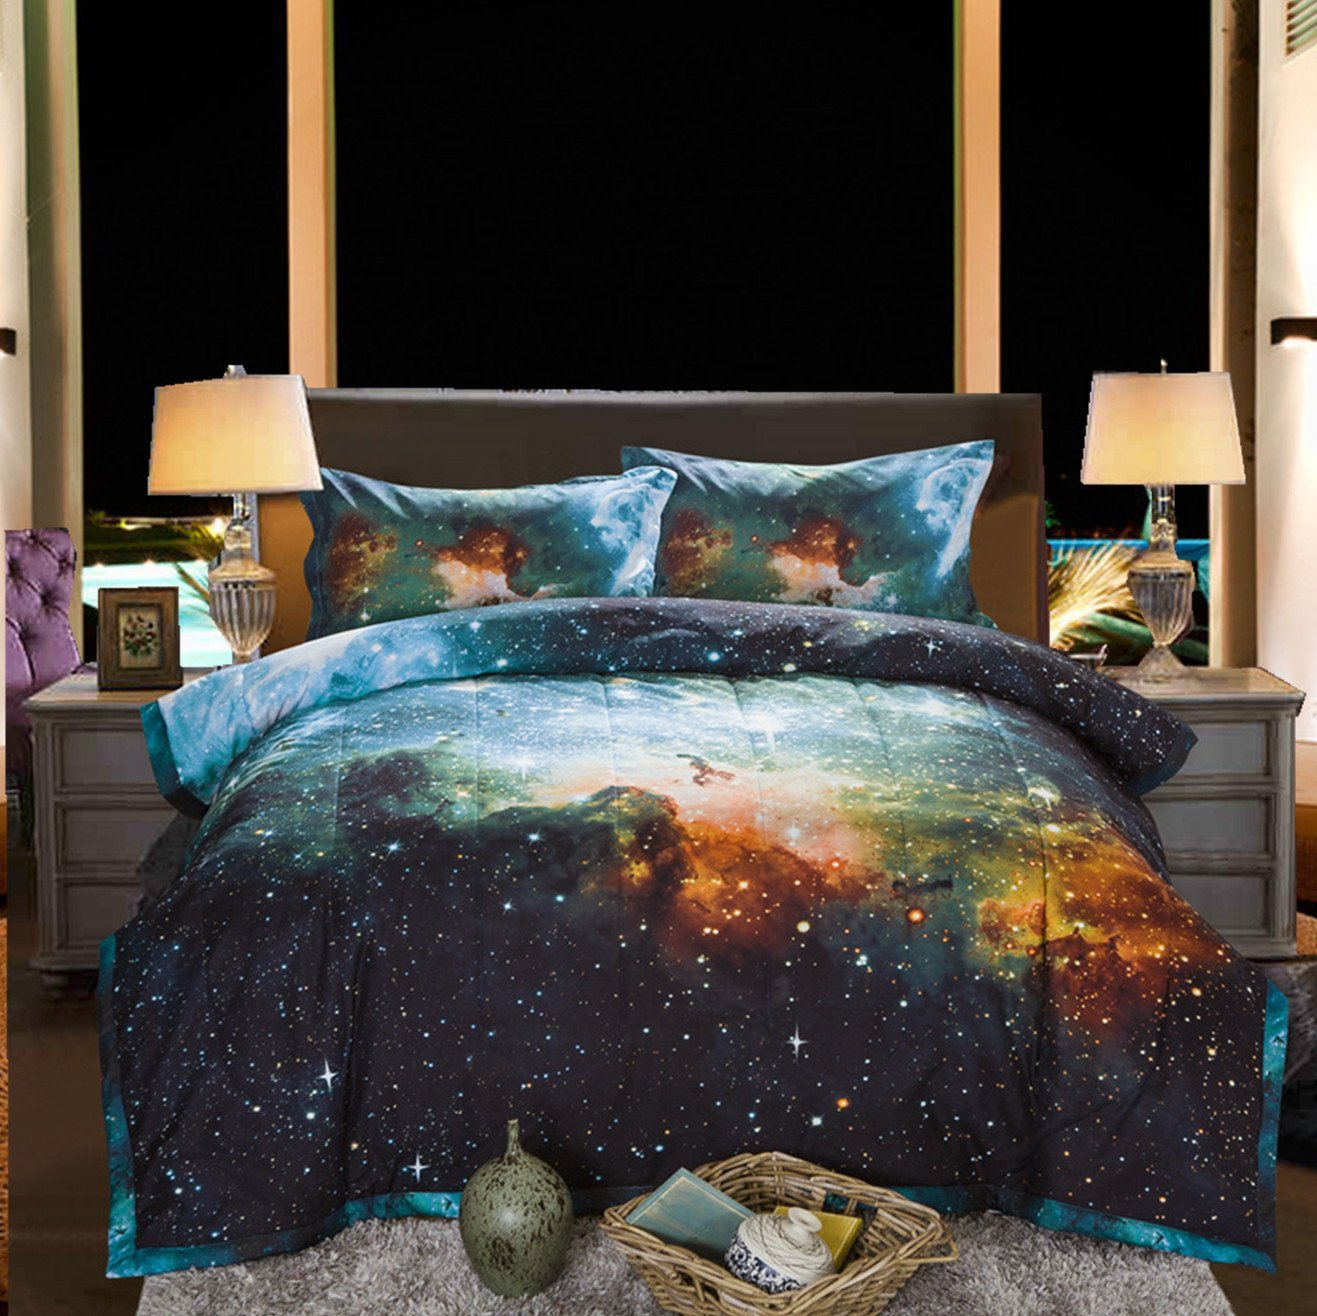 WARM TOUR 4PCS Galaxy Bedding Sets 3D Printed Cloud Quilt Comforter Sets With 2 Bedroom Pillow Covers